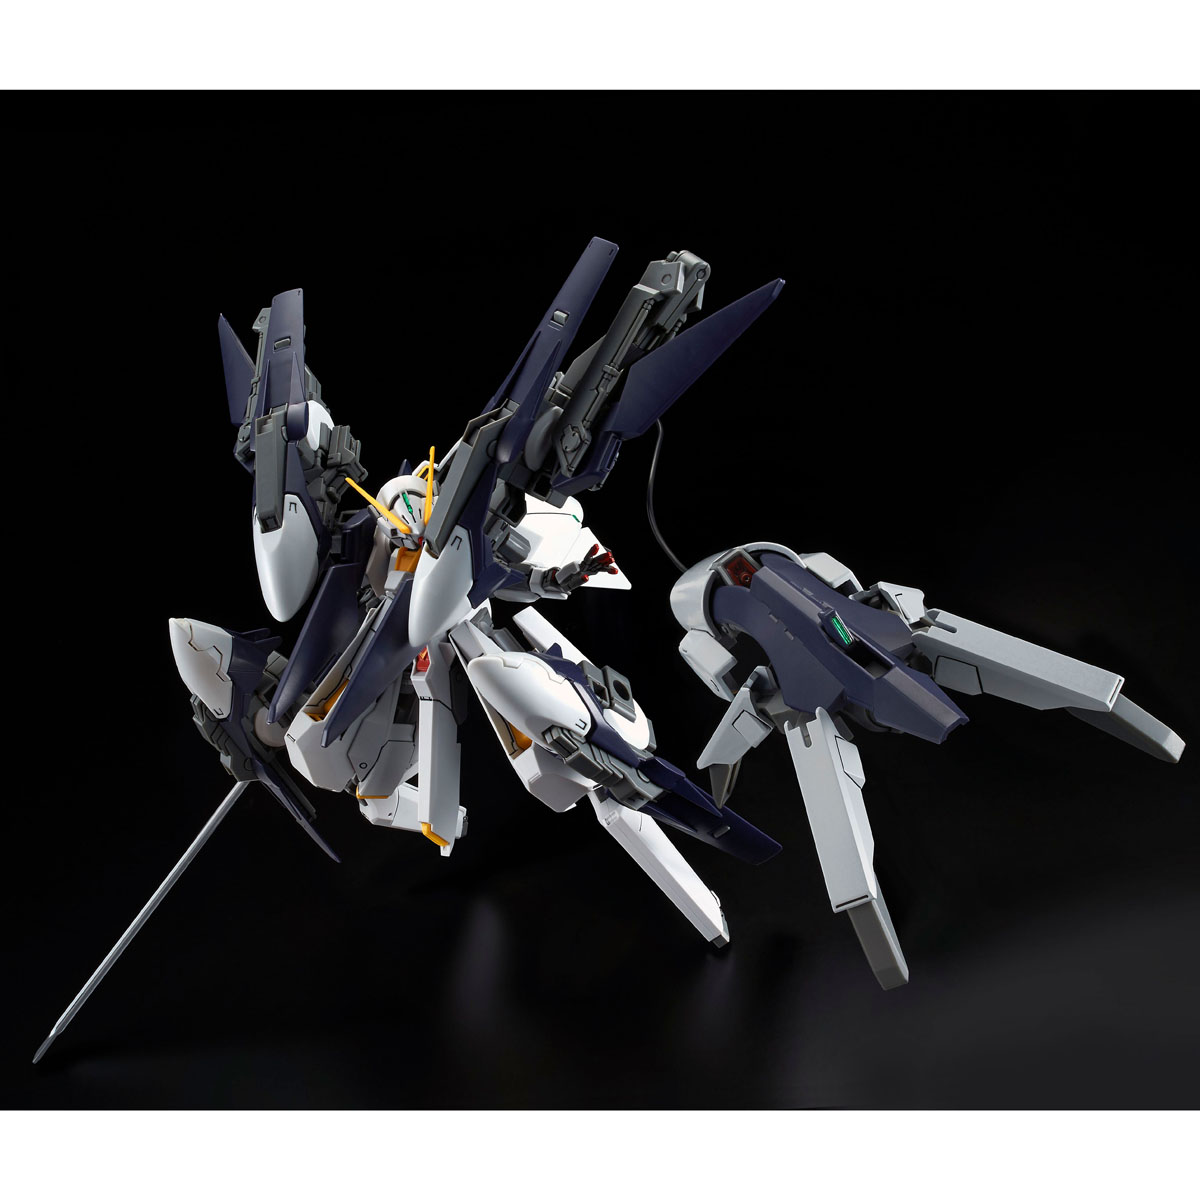 HG 1/144 HRUDUDUⅡ EXPANSION SET (ADVANCE OF Z THE FLAG OF TITANS) [2020年6月發送]